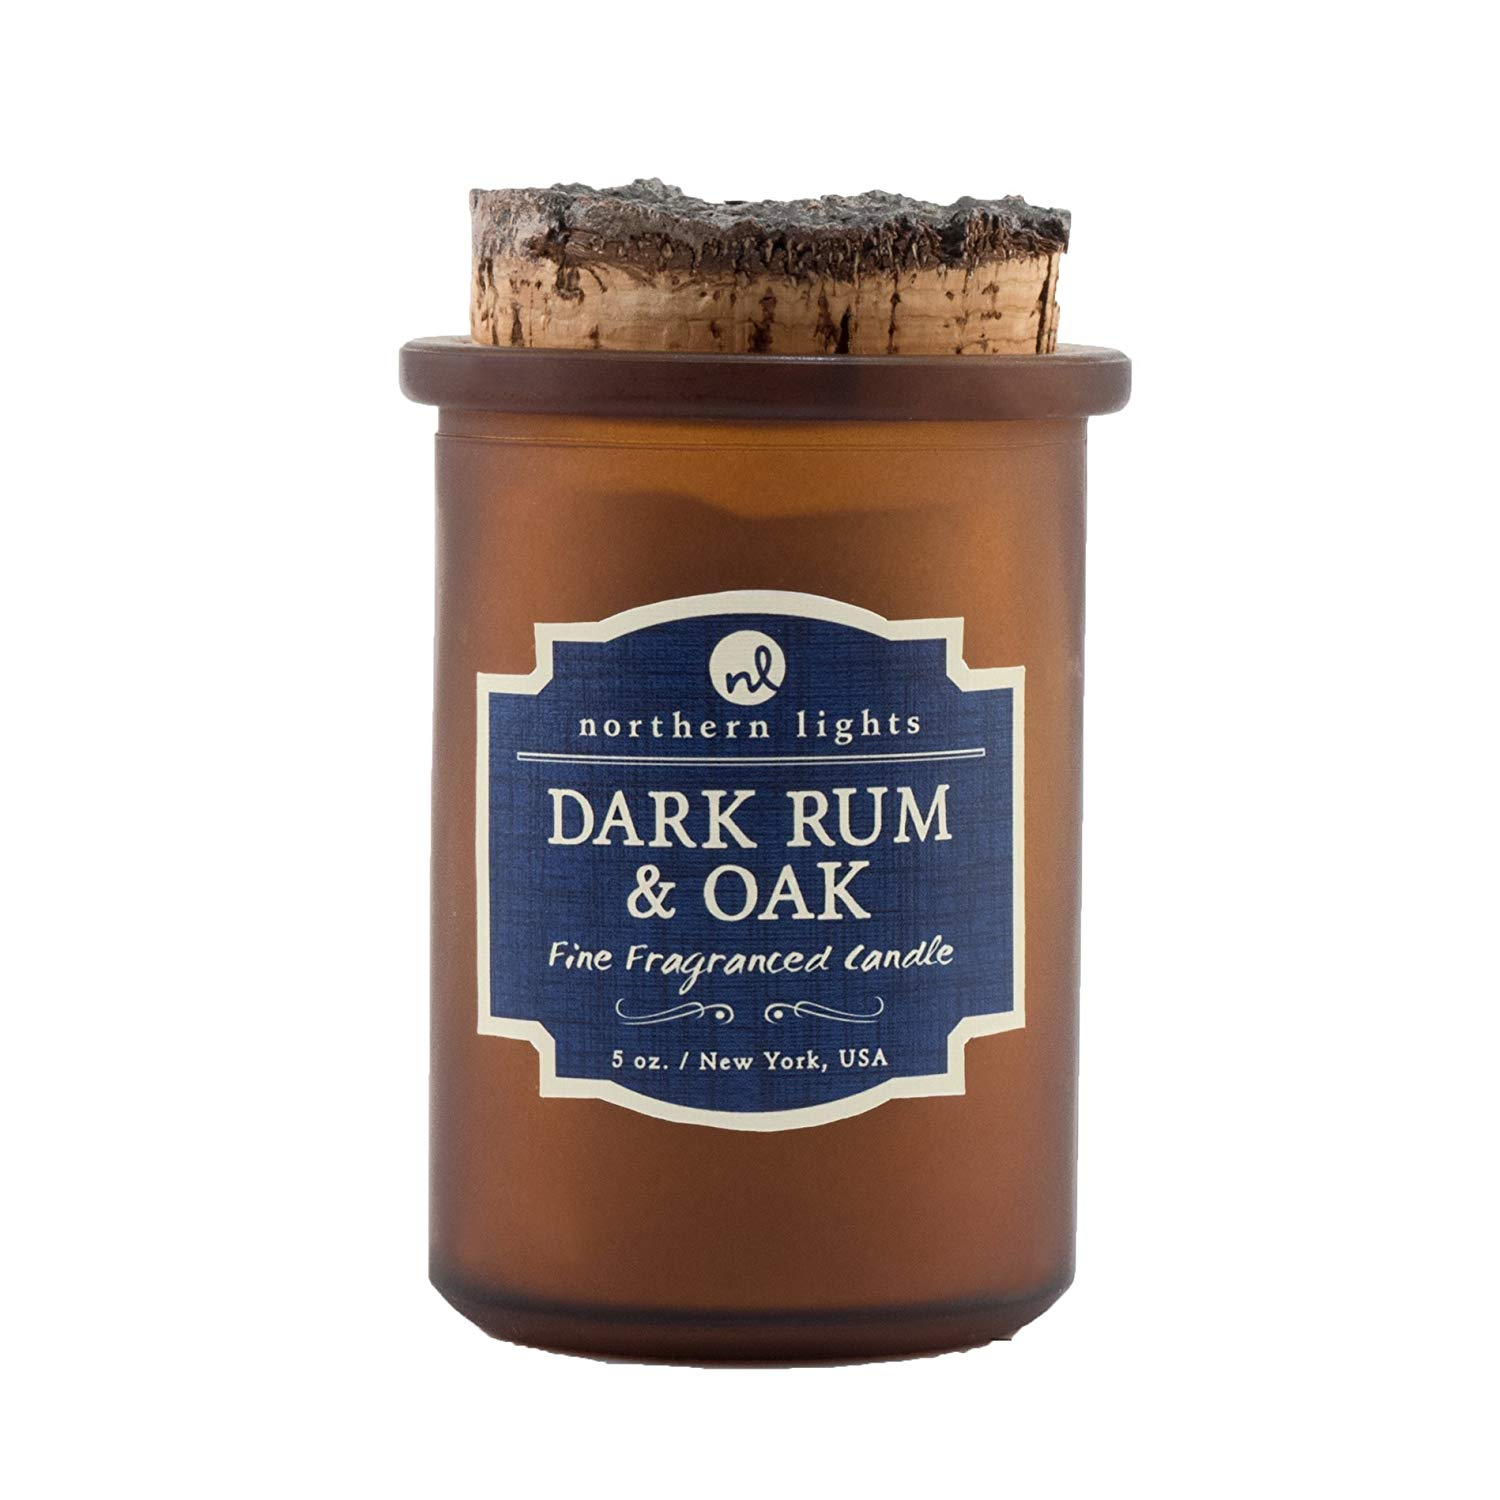 DarkRum